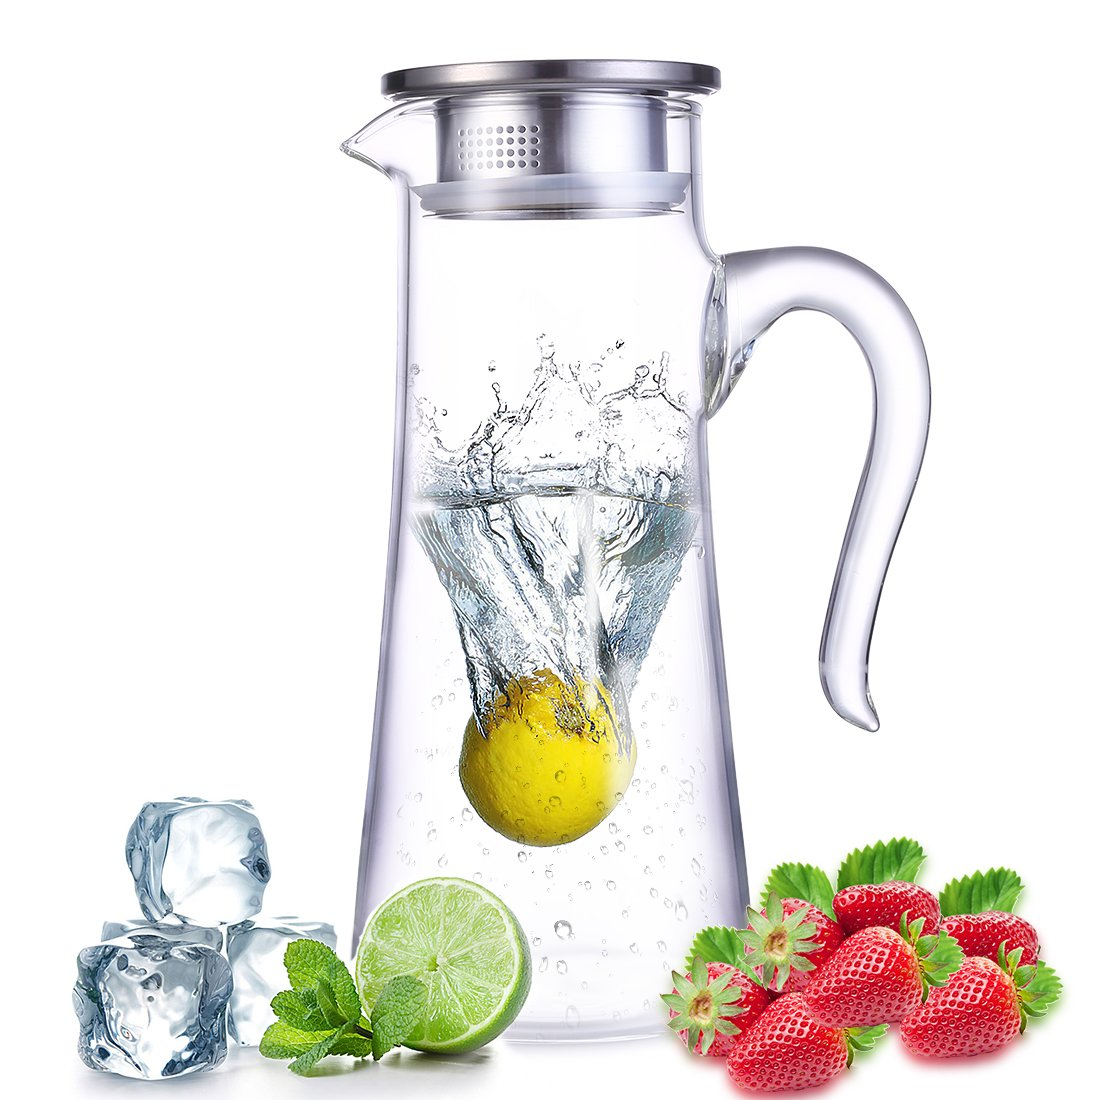 oneisall Borocilicate Glass Pitcher with bamboo lid Portable Handle - Glass Carafes with stainless steel strainer - Perfect For Water,Tea,Juice,milk DHTUS628 (1.8L) (1.5L)